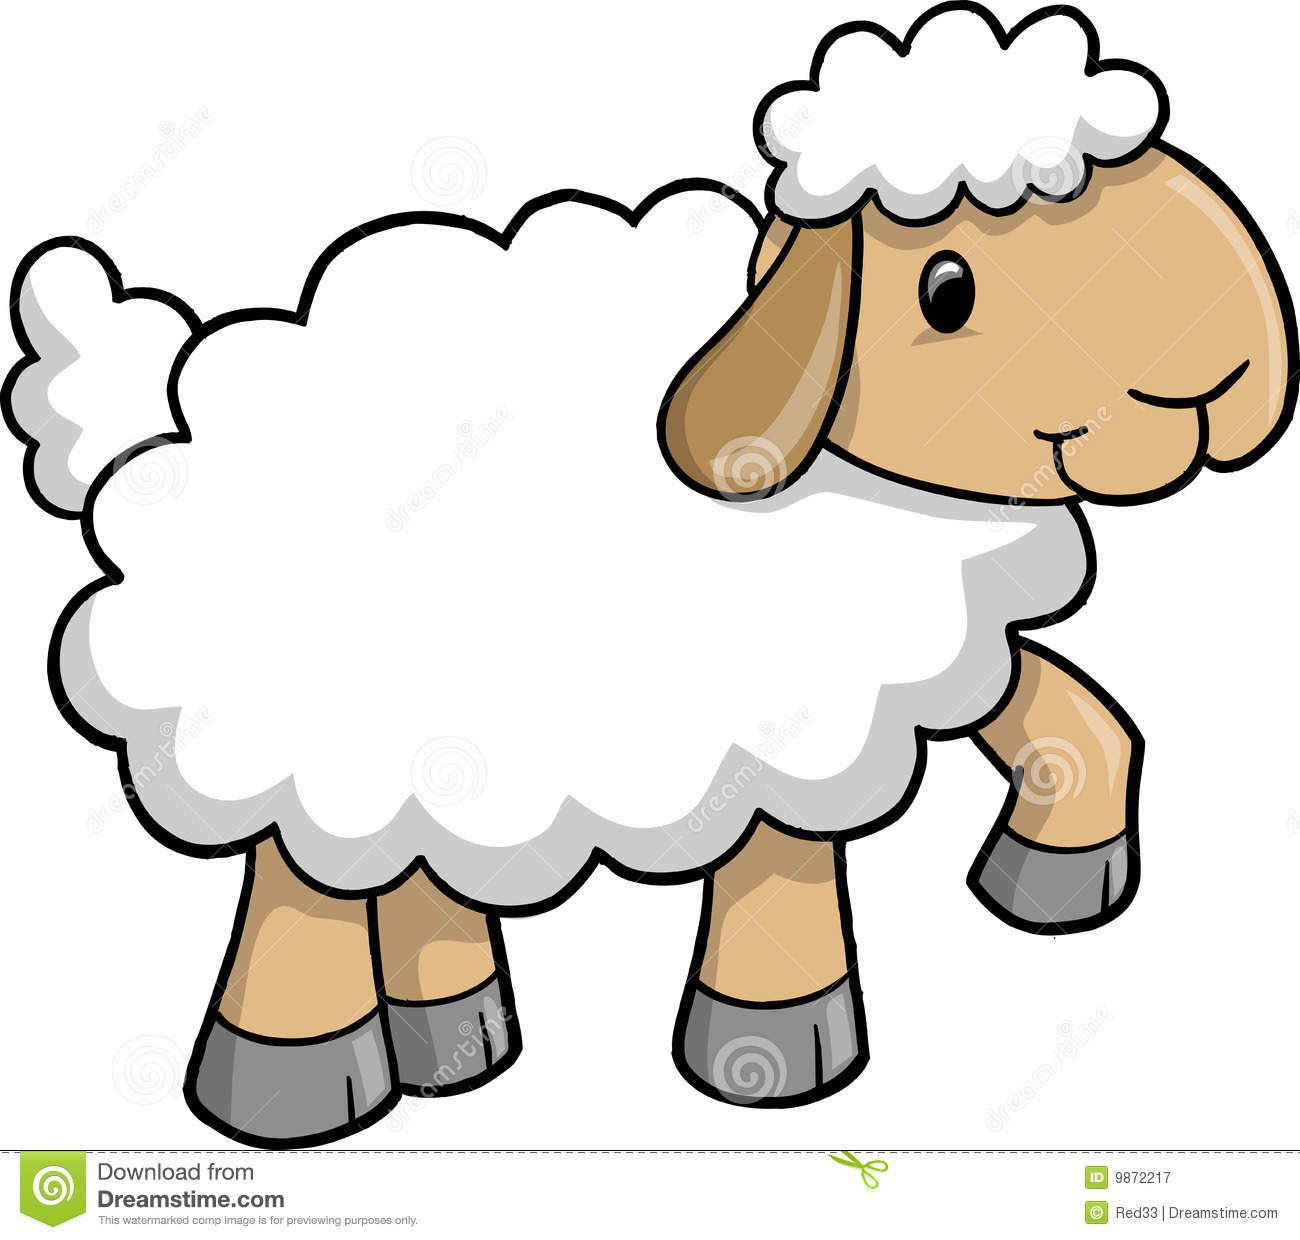 Royalty Free Stock Photography Cute Shee-Royalty Free Stock Photography Cute Sheep Vector-3